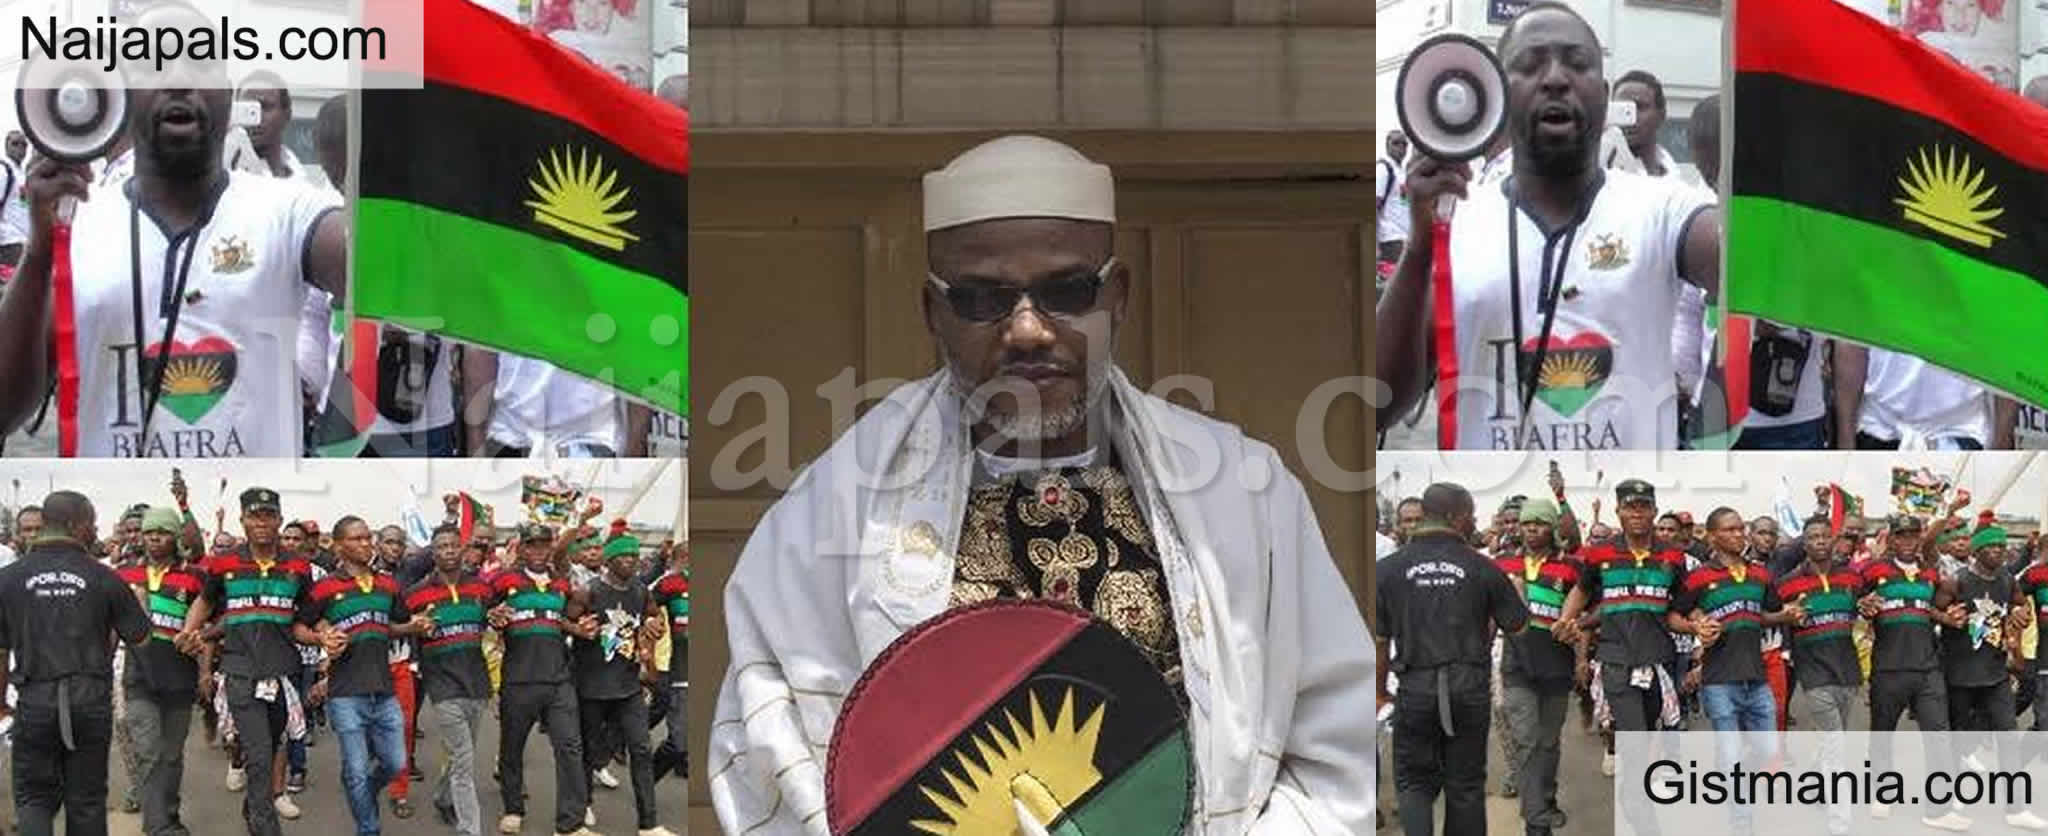 <img alt='.' class='lazyload' data-src='https://img.gistmania.com/emot/news.gif' /><b> IPOB Declares Sit At Home Protest In South East As Terrorists Plan To Kill Children On Oct 1</b>